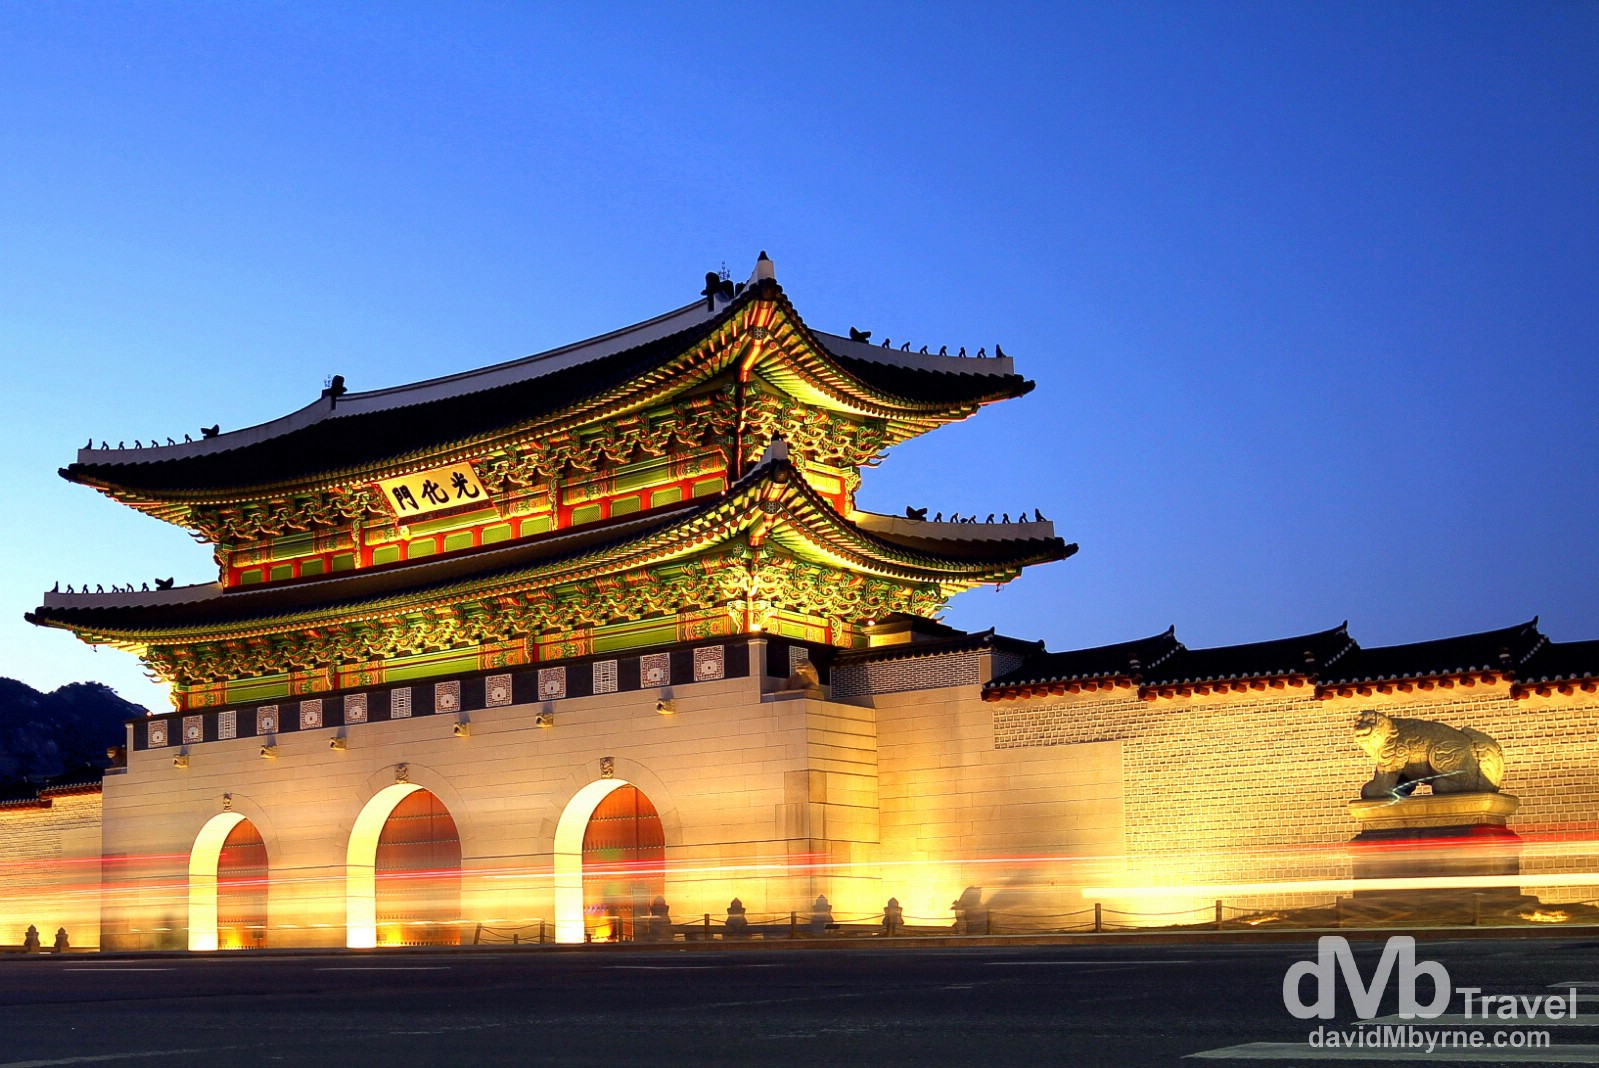 Gwanghwamun Seoul, Gwanghwamun Gate, Seoul, South Korea - Worldwide Destination ...